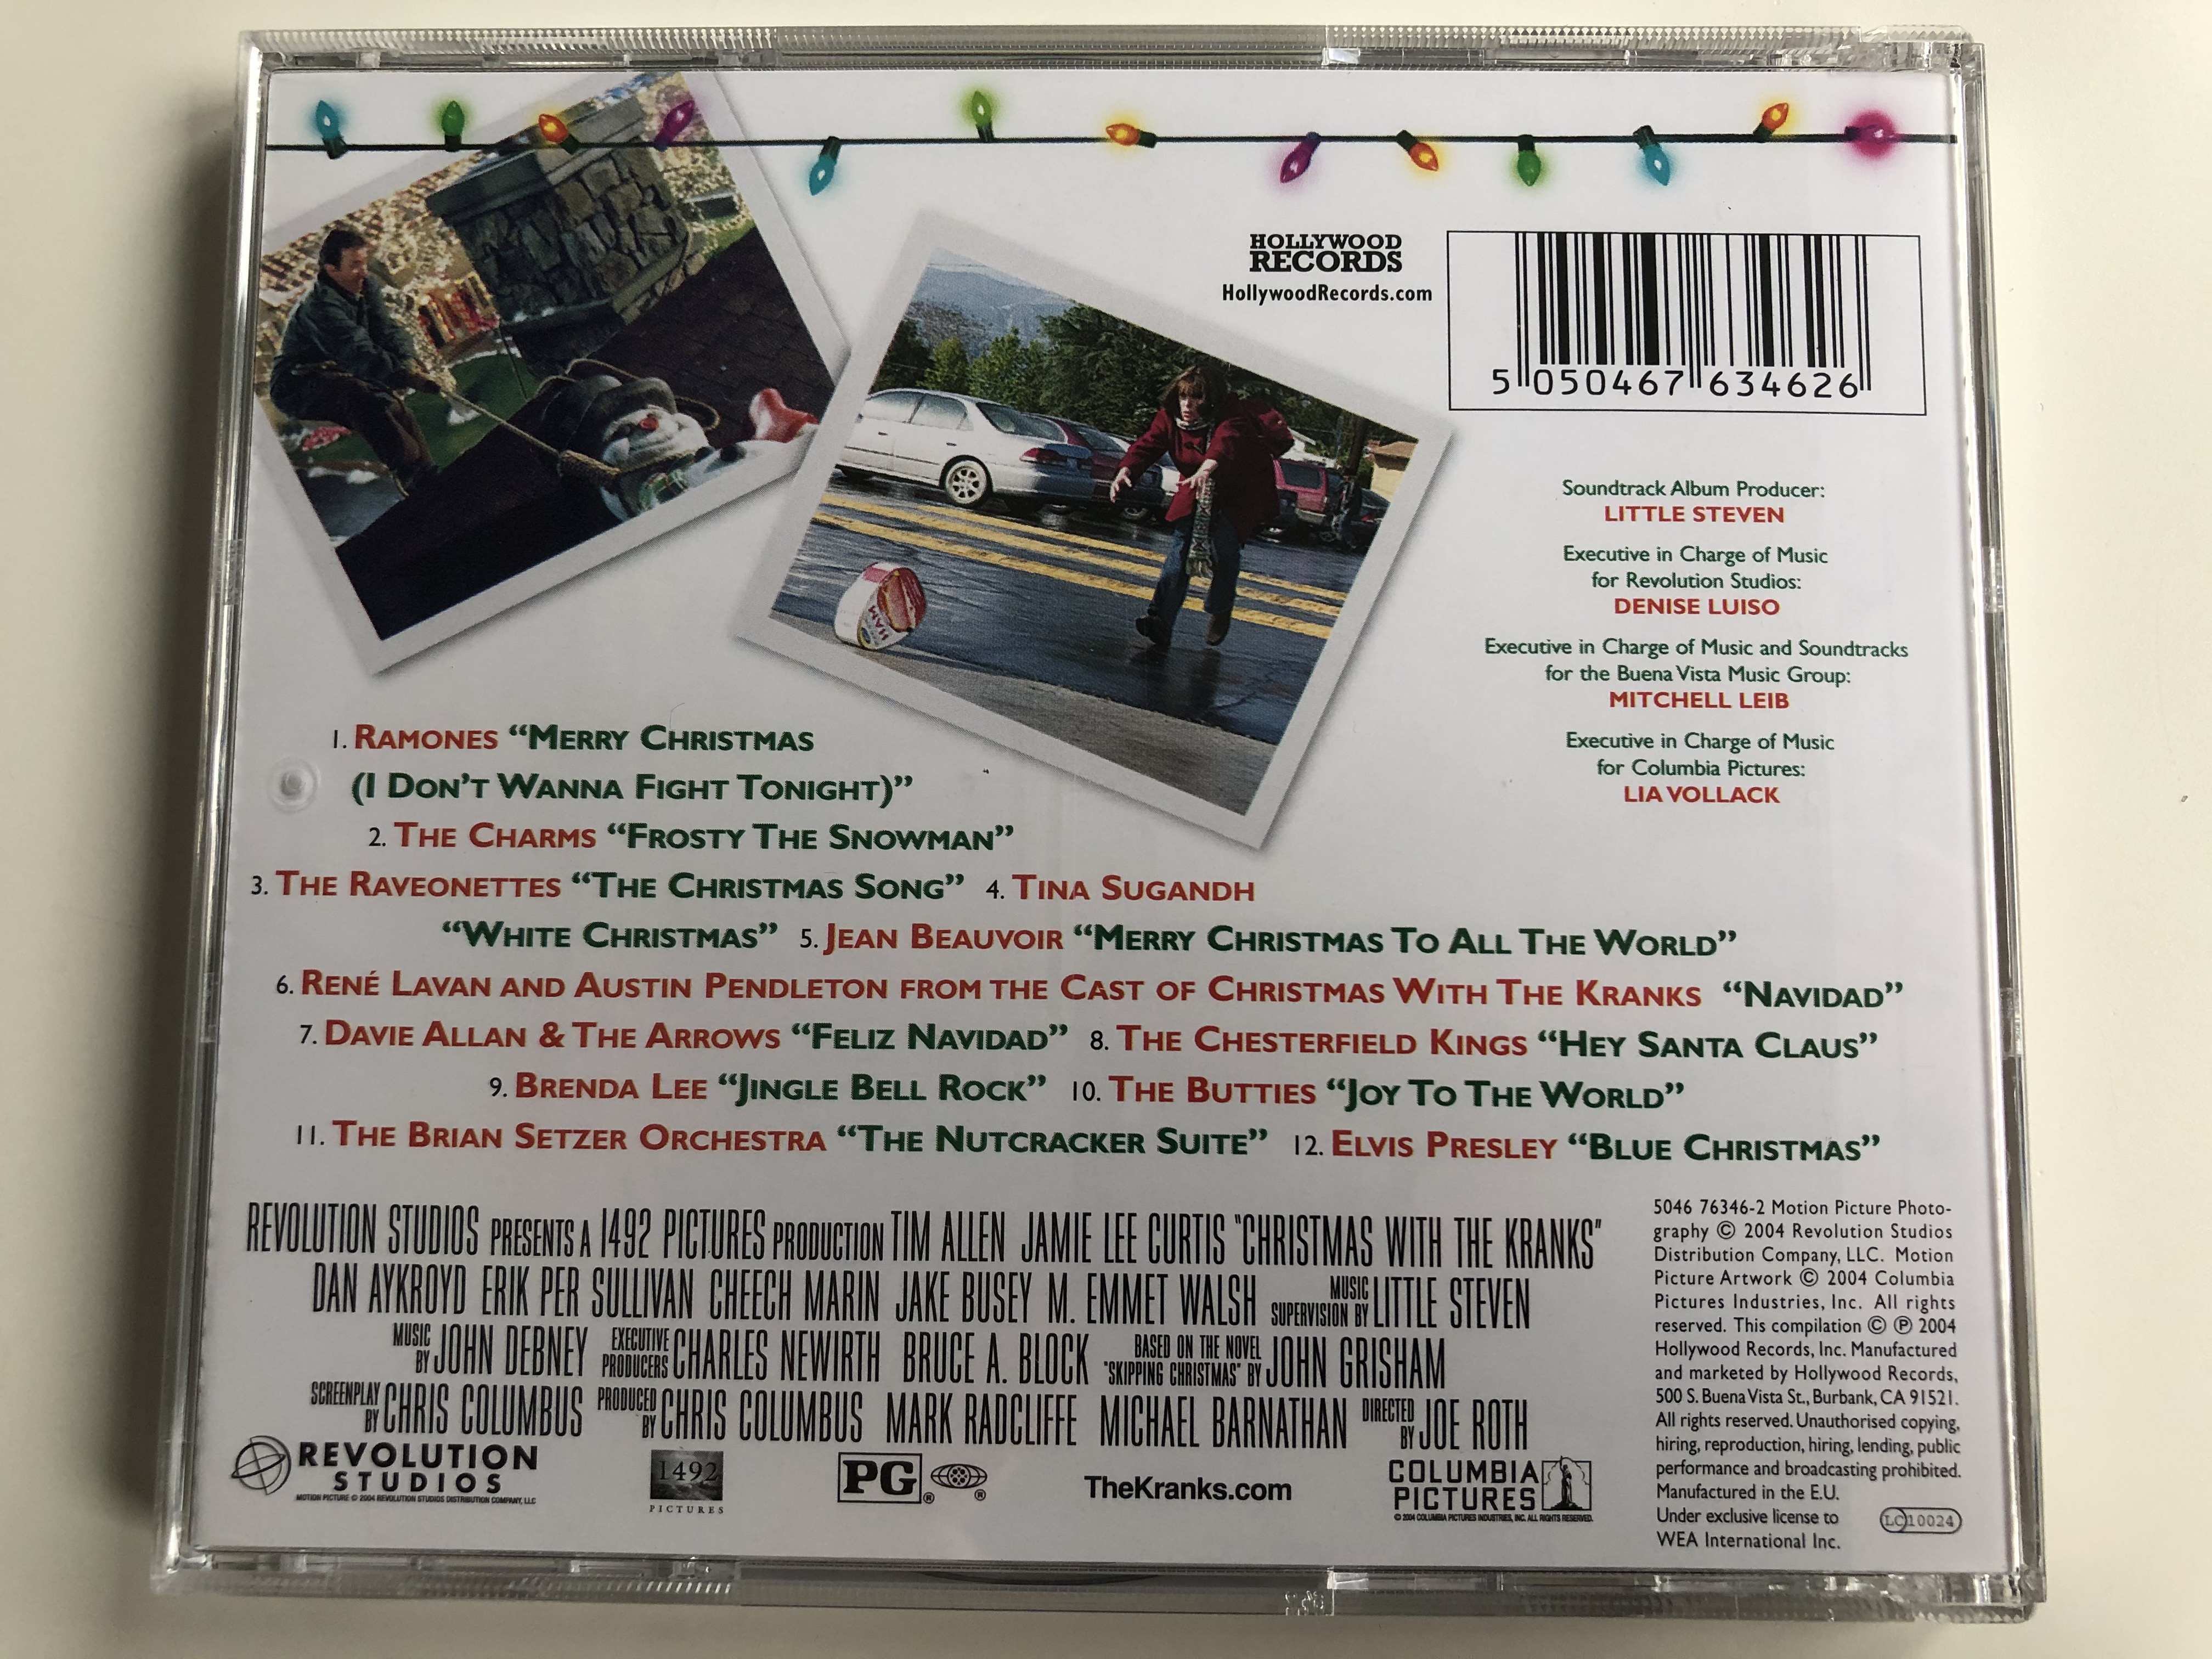 christmas-with-the-kranks-original-soundtrack-hollywood-records-audio-cd-2004-5046-76346-2-7-.jpg